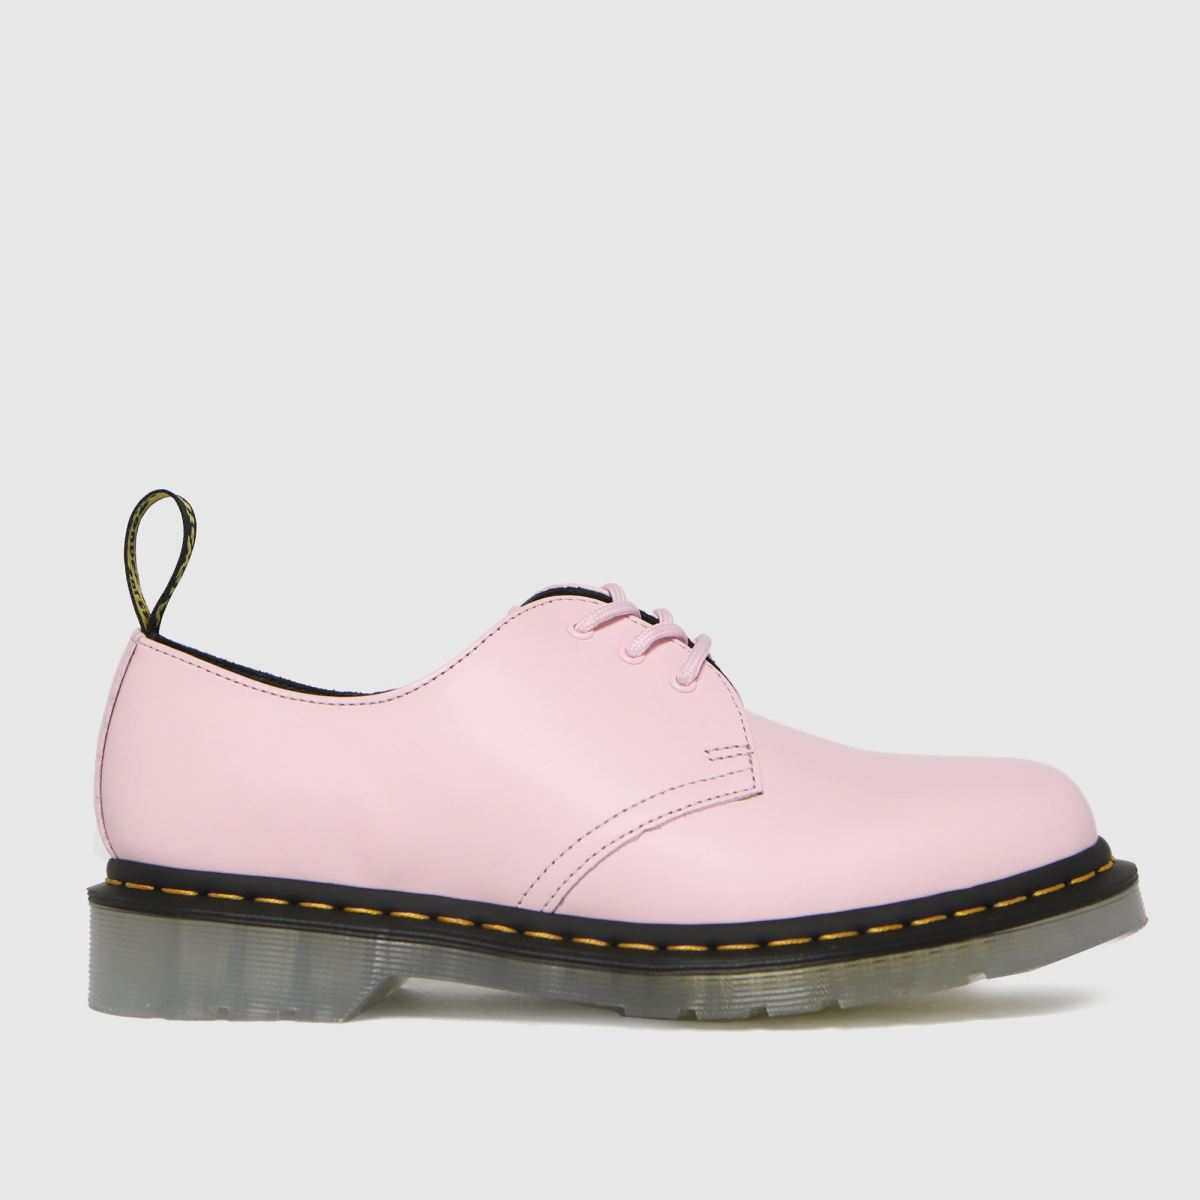 Dr Martens Pale Pink 1461 Iced Flat Shoes